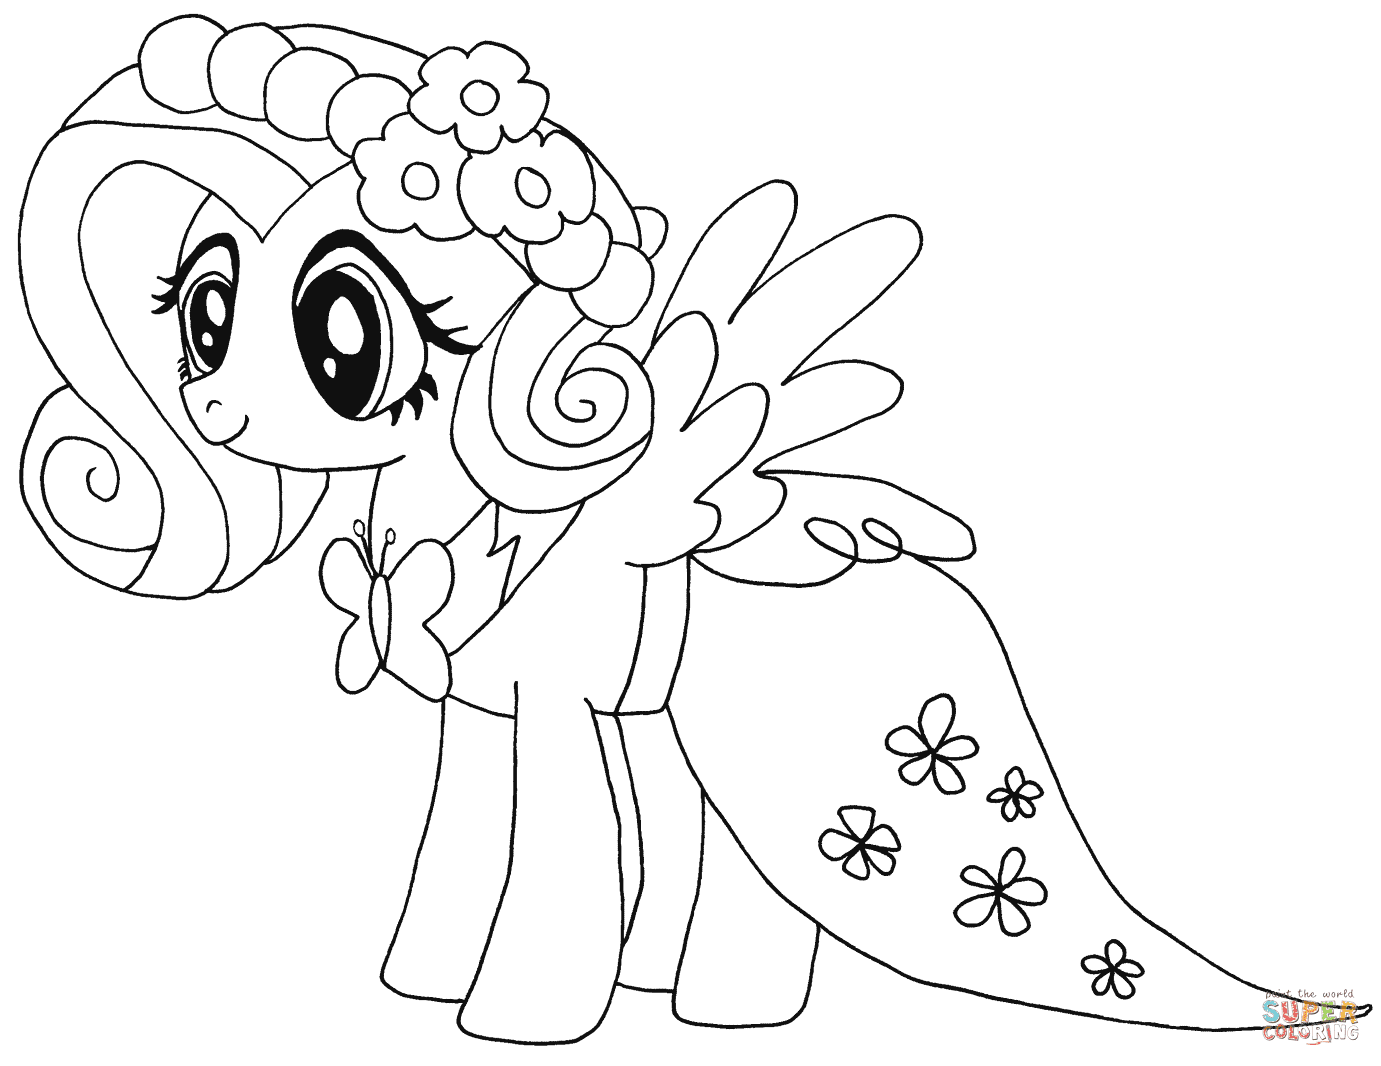 420 Colouring Pages For My Little Pony Images & Pictures In HD